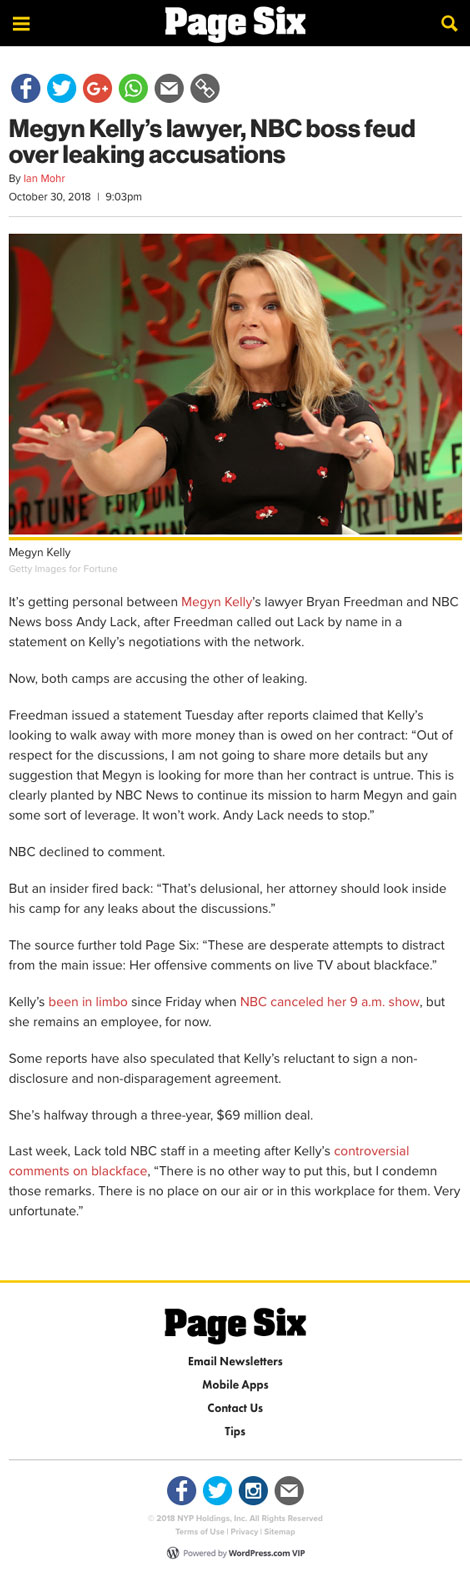 Megyn Kelly's lawyer, NBC boss feud over leaking accusations - article by Page Six